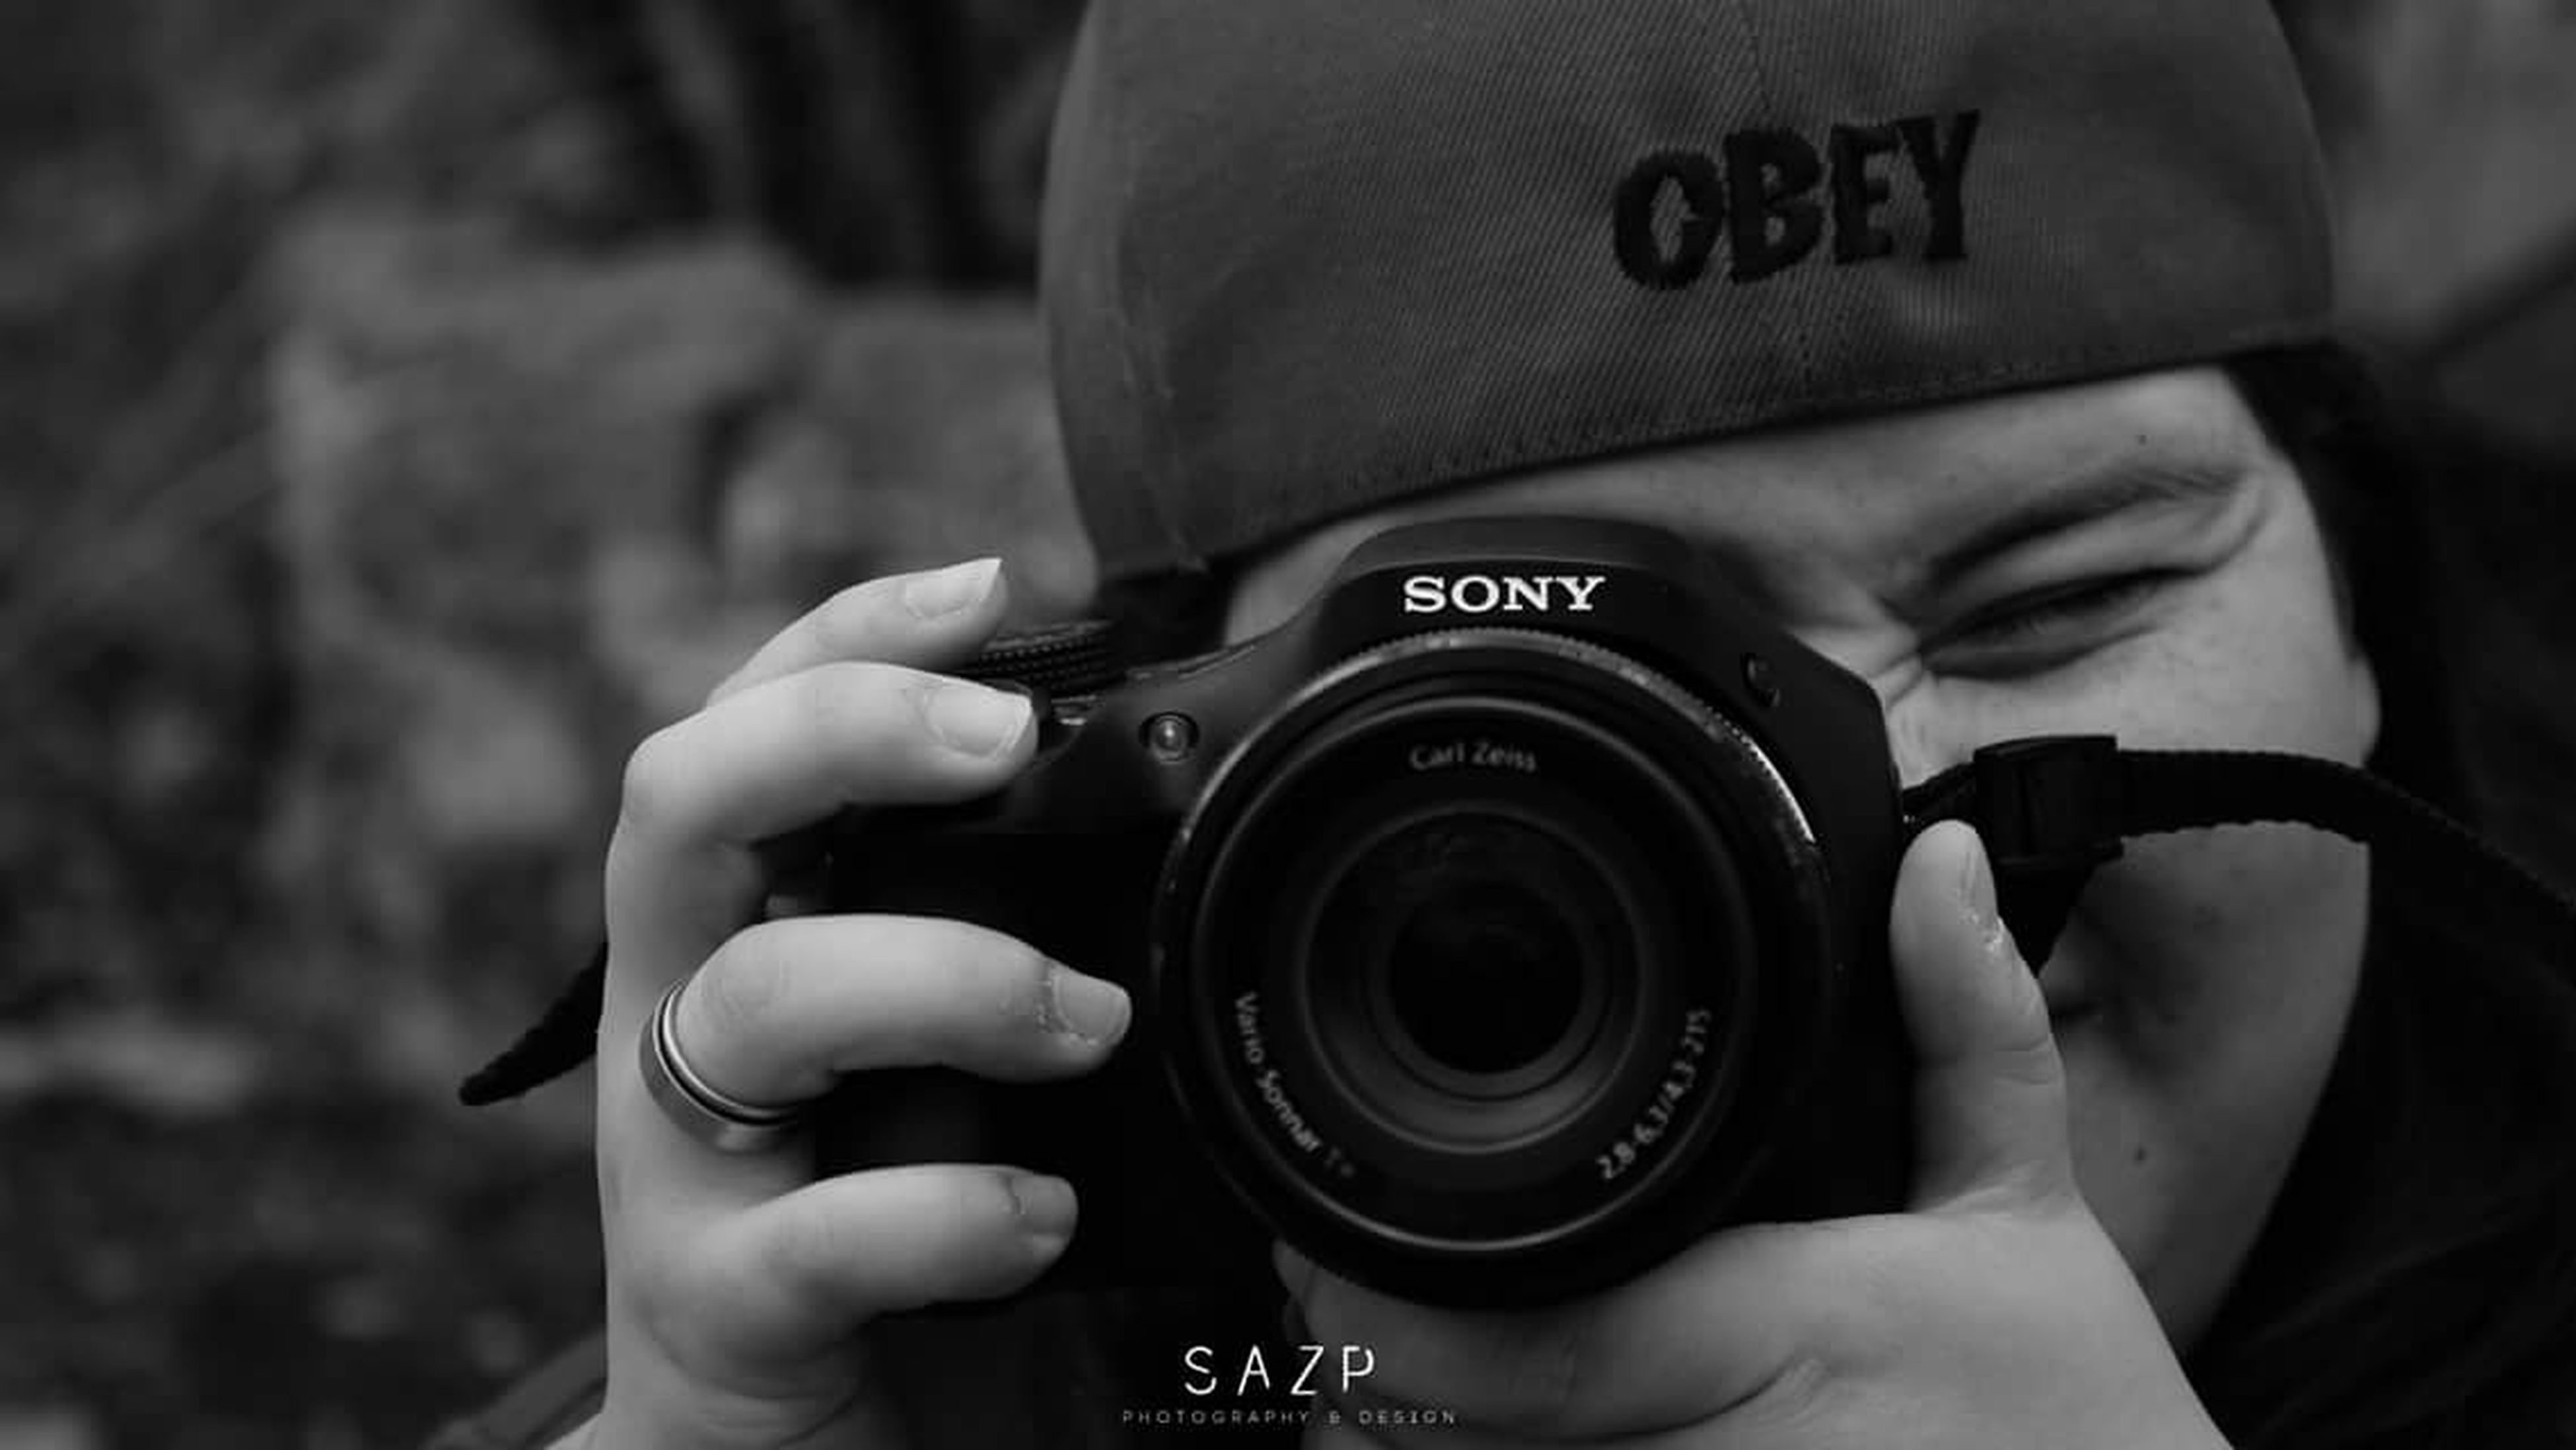 holding, photography themes, photographing, person, communication, lifestyles, camera - photographic equipment, men, leisure activity, technology, digital camera, focus on foreground, part of, text, cropped, smart phone, wireless technology, close-up